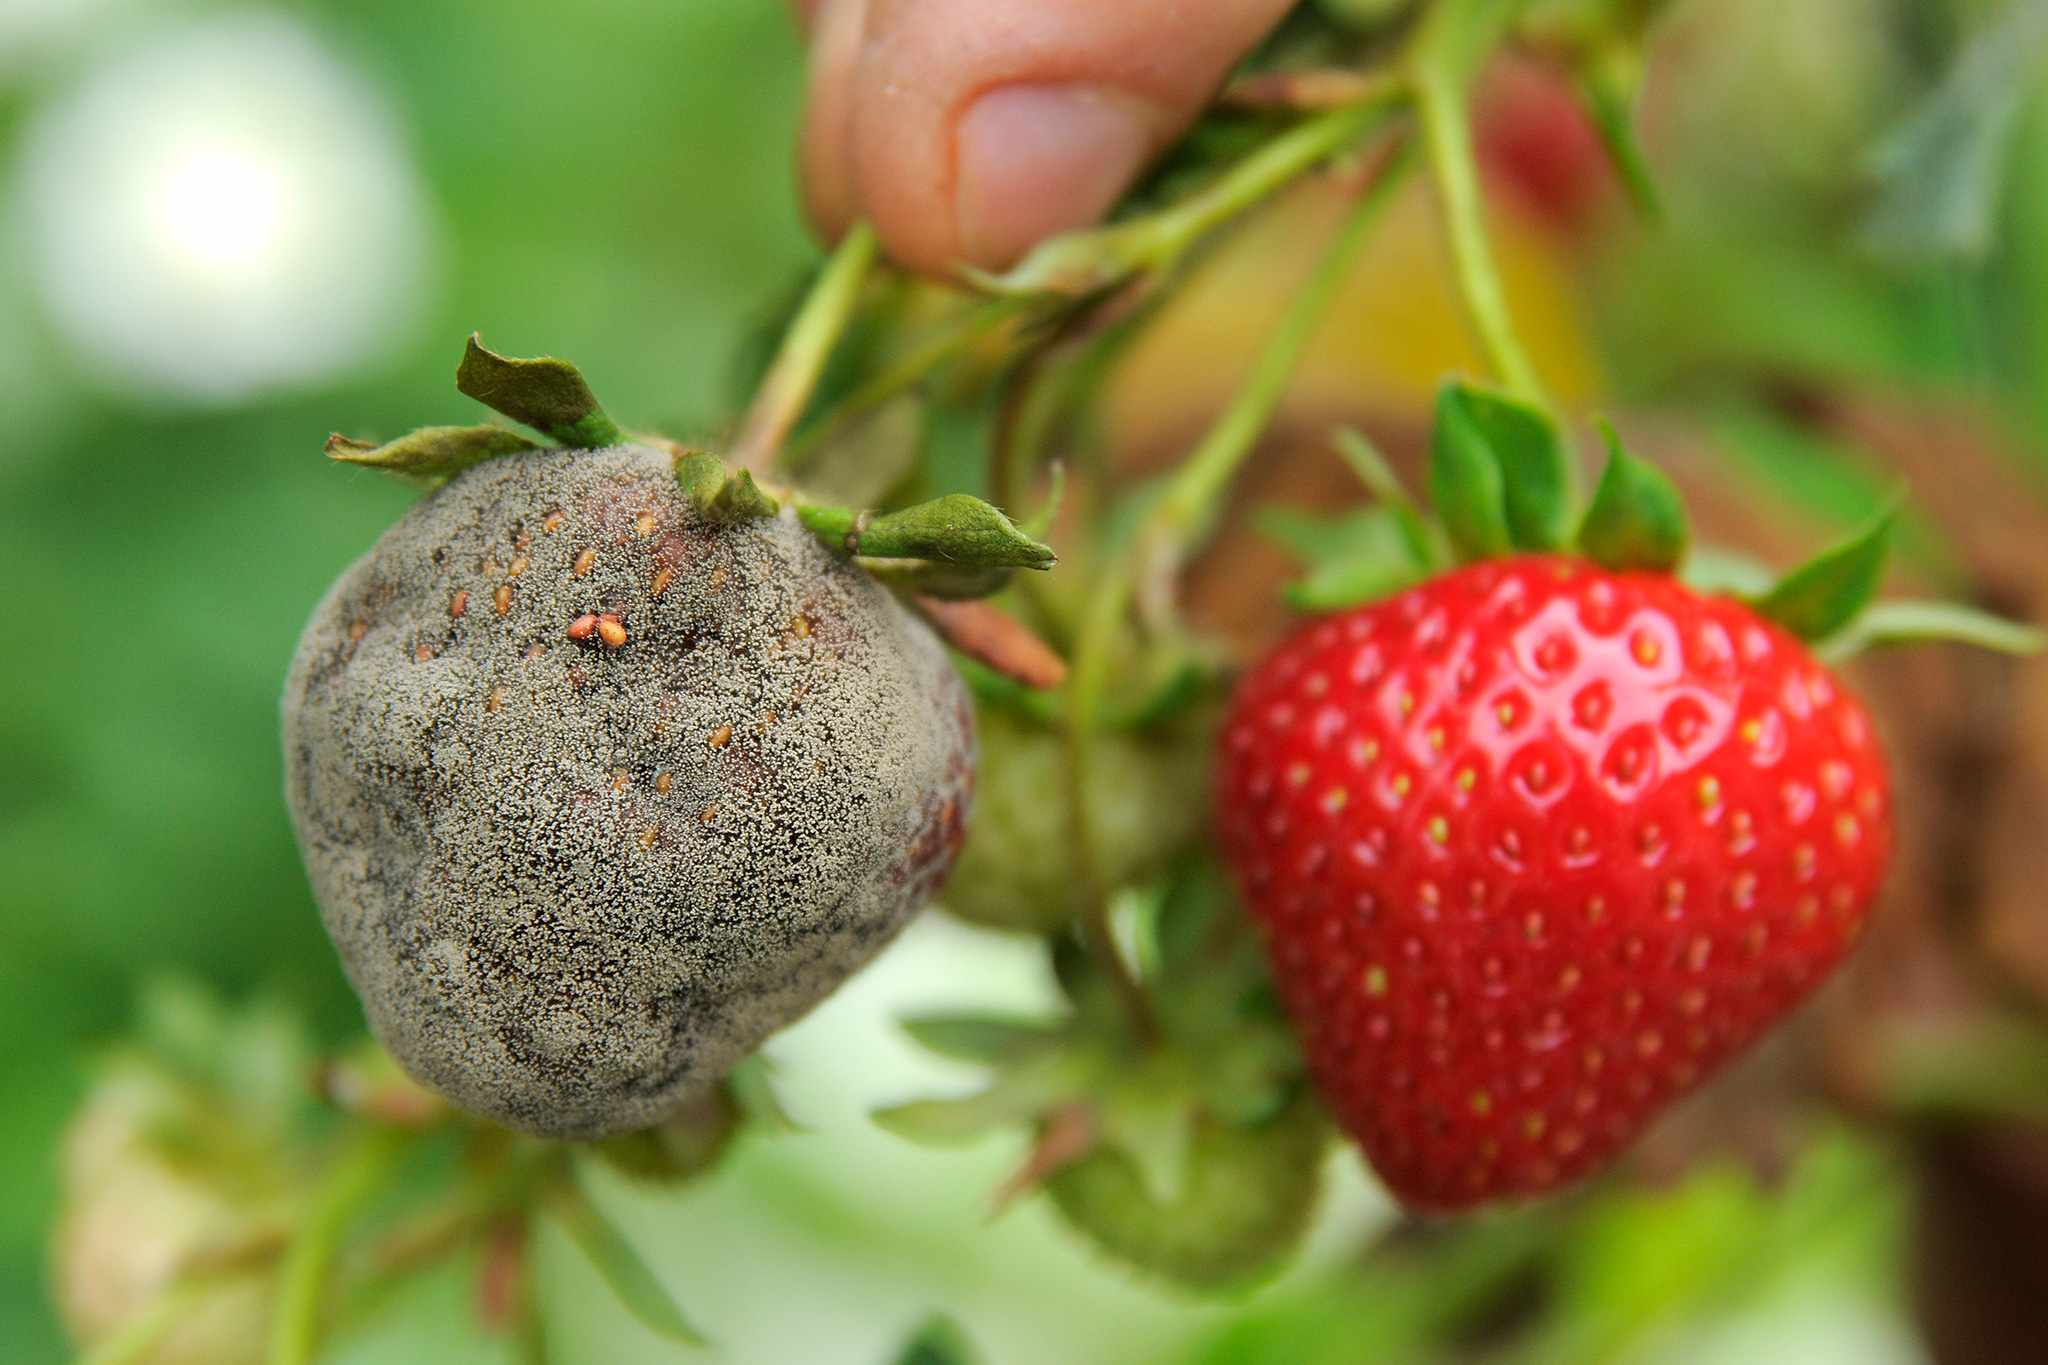 A strawberry thickly covered in botrytis grey mould